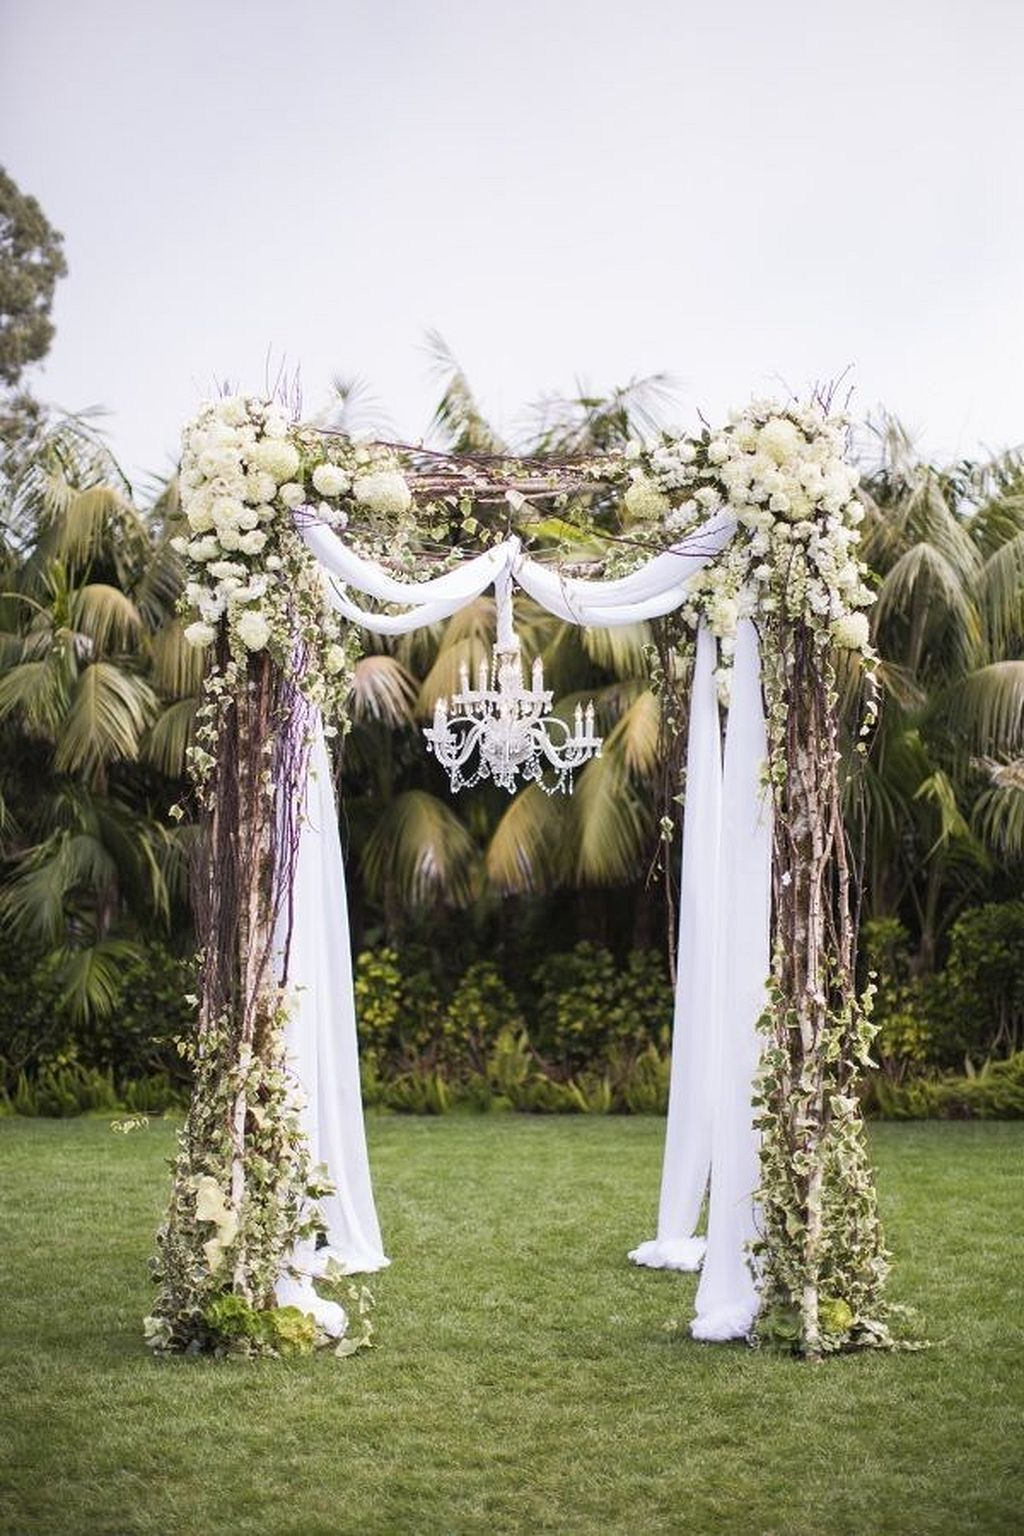 97 Floral Wedding Arch Decoration Ideas | Floral wedding, Weddings ...